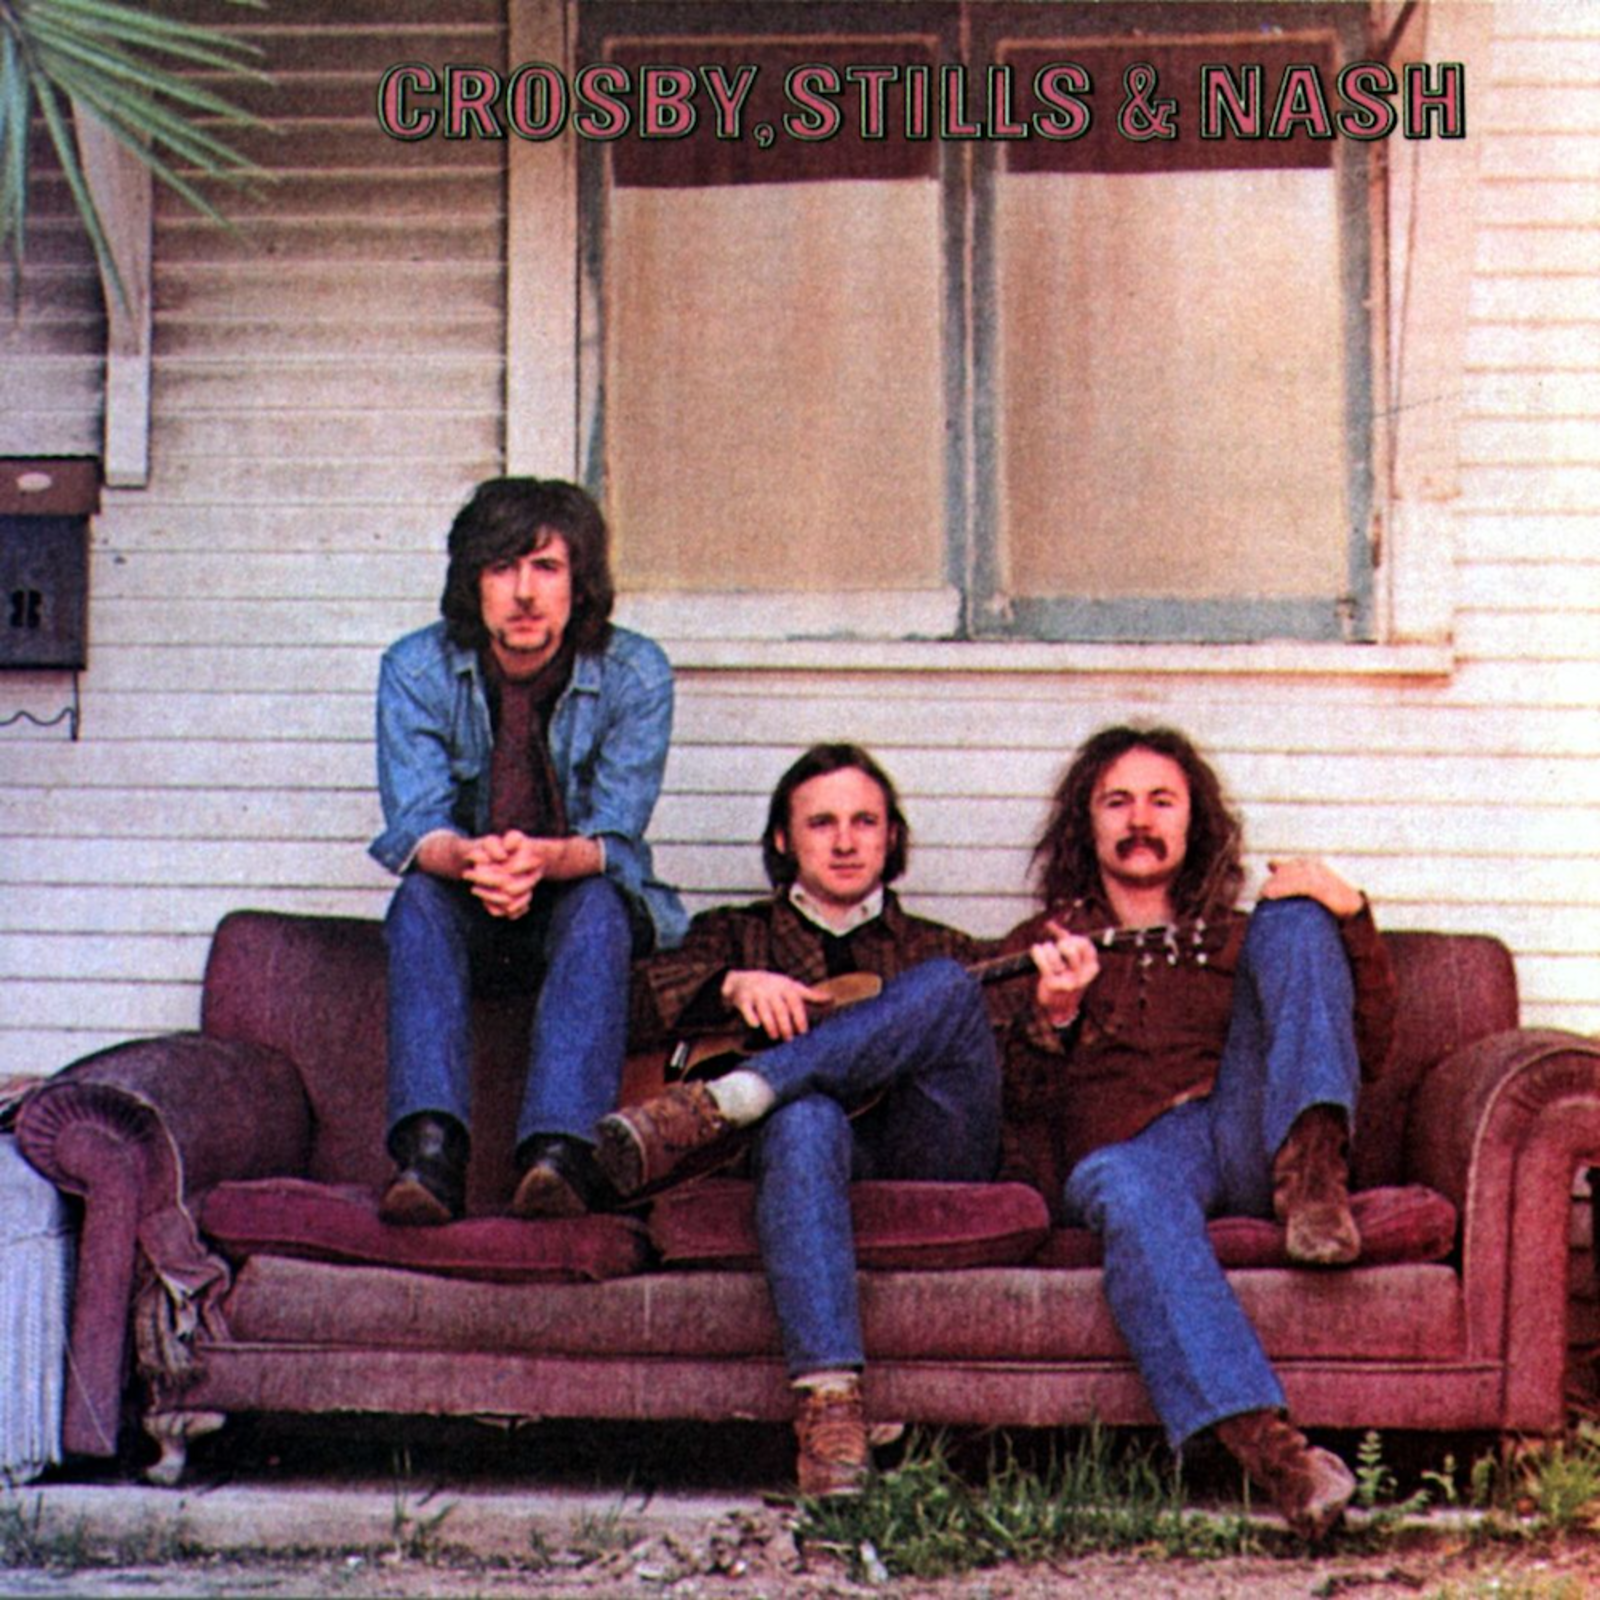 Crosby, Stills and Nash by Crosby, Stills and Nash